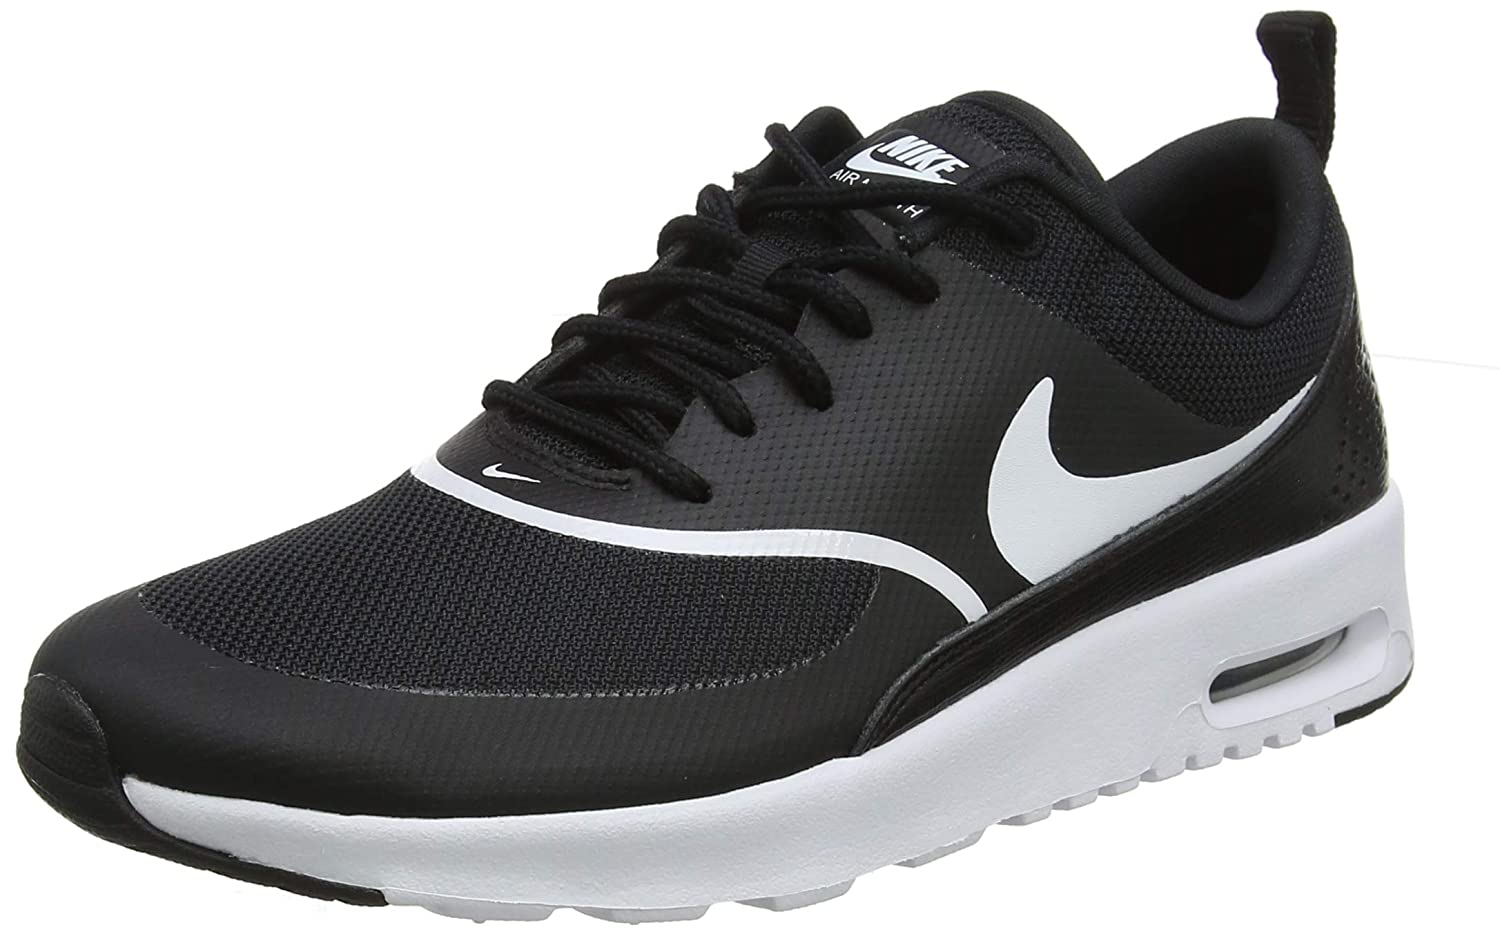 Best Selling Nike Air Max Thea Trainer Nike Women Nike Cargo